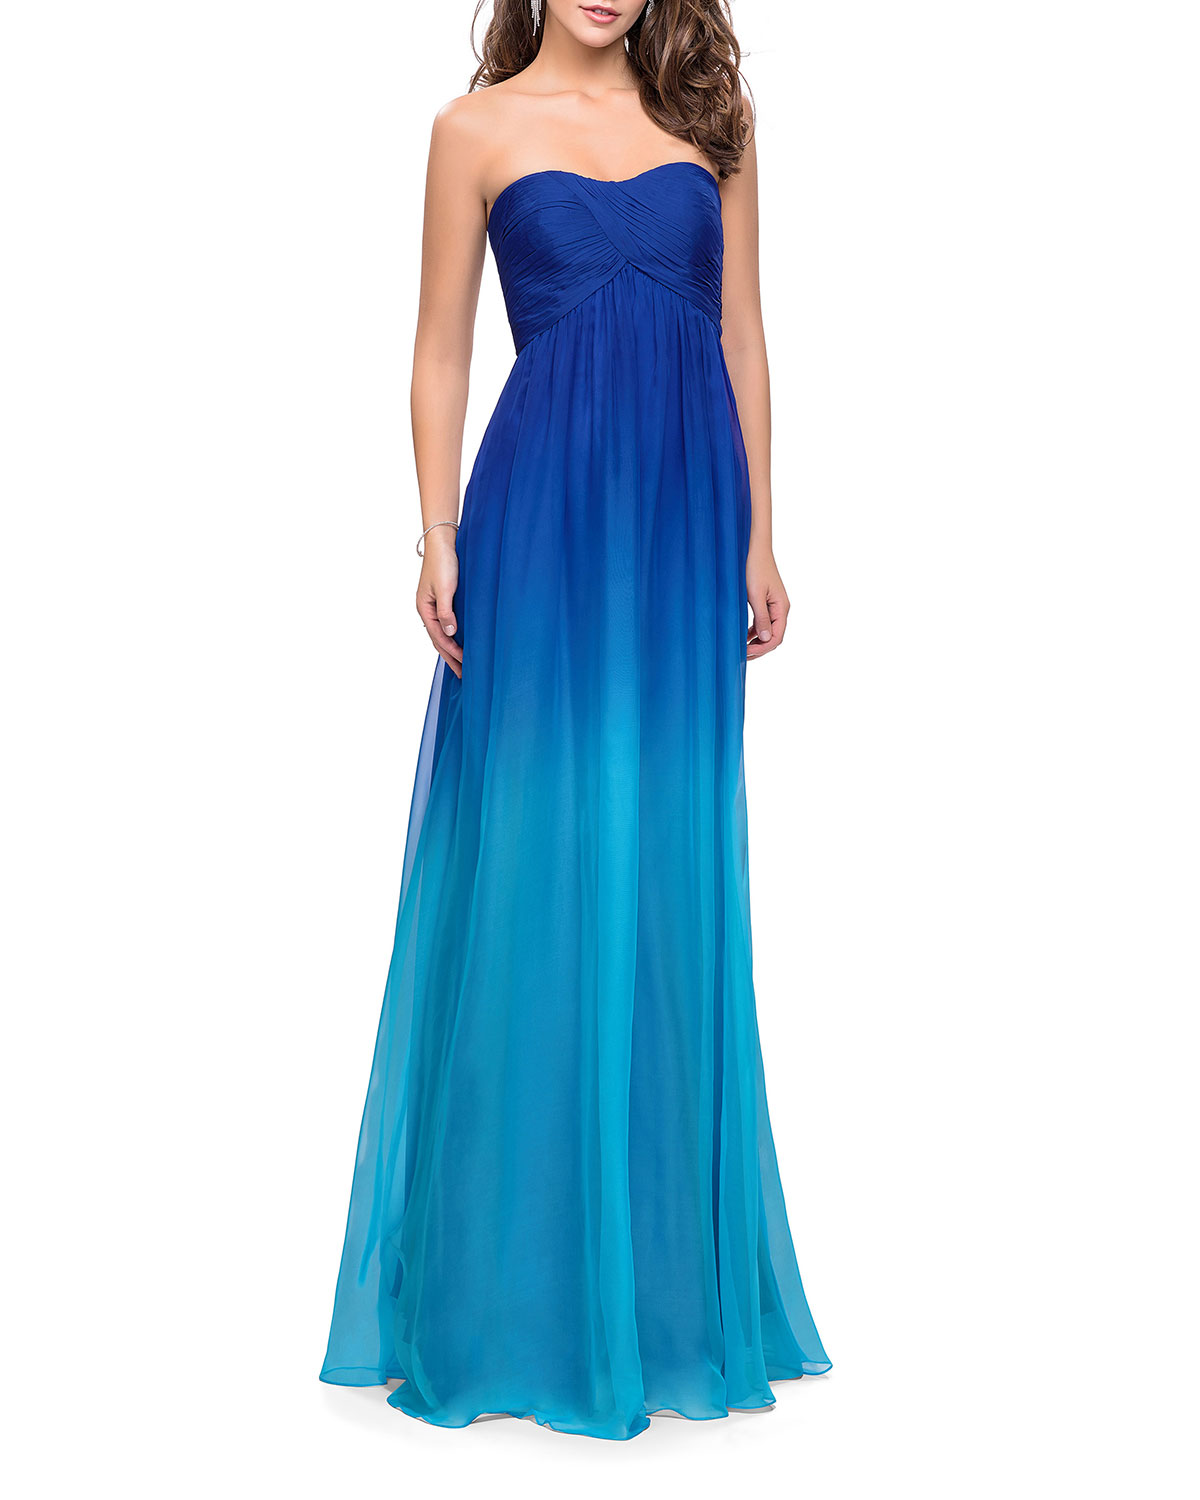 22e640c5d1b La Femme Ombre Strapless Chiffon Gown with Ruched Bodice   Open-Back ...